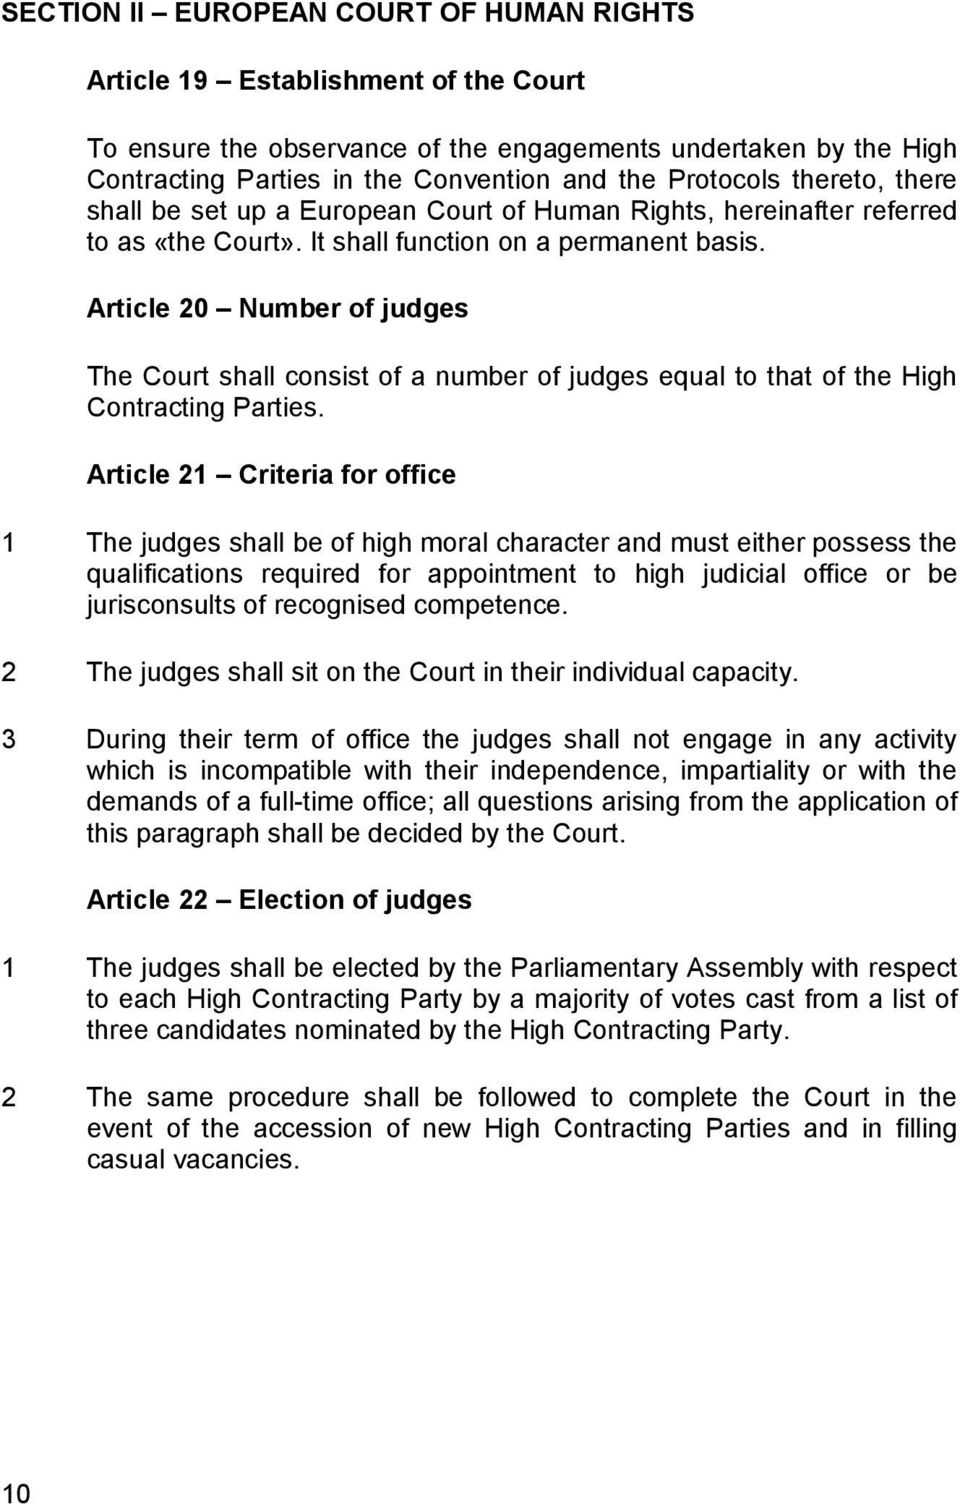 Article 20 Number of judges The Court shall consist of a number of judges equal to that of the High Contracting Parties.